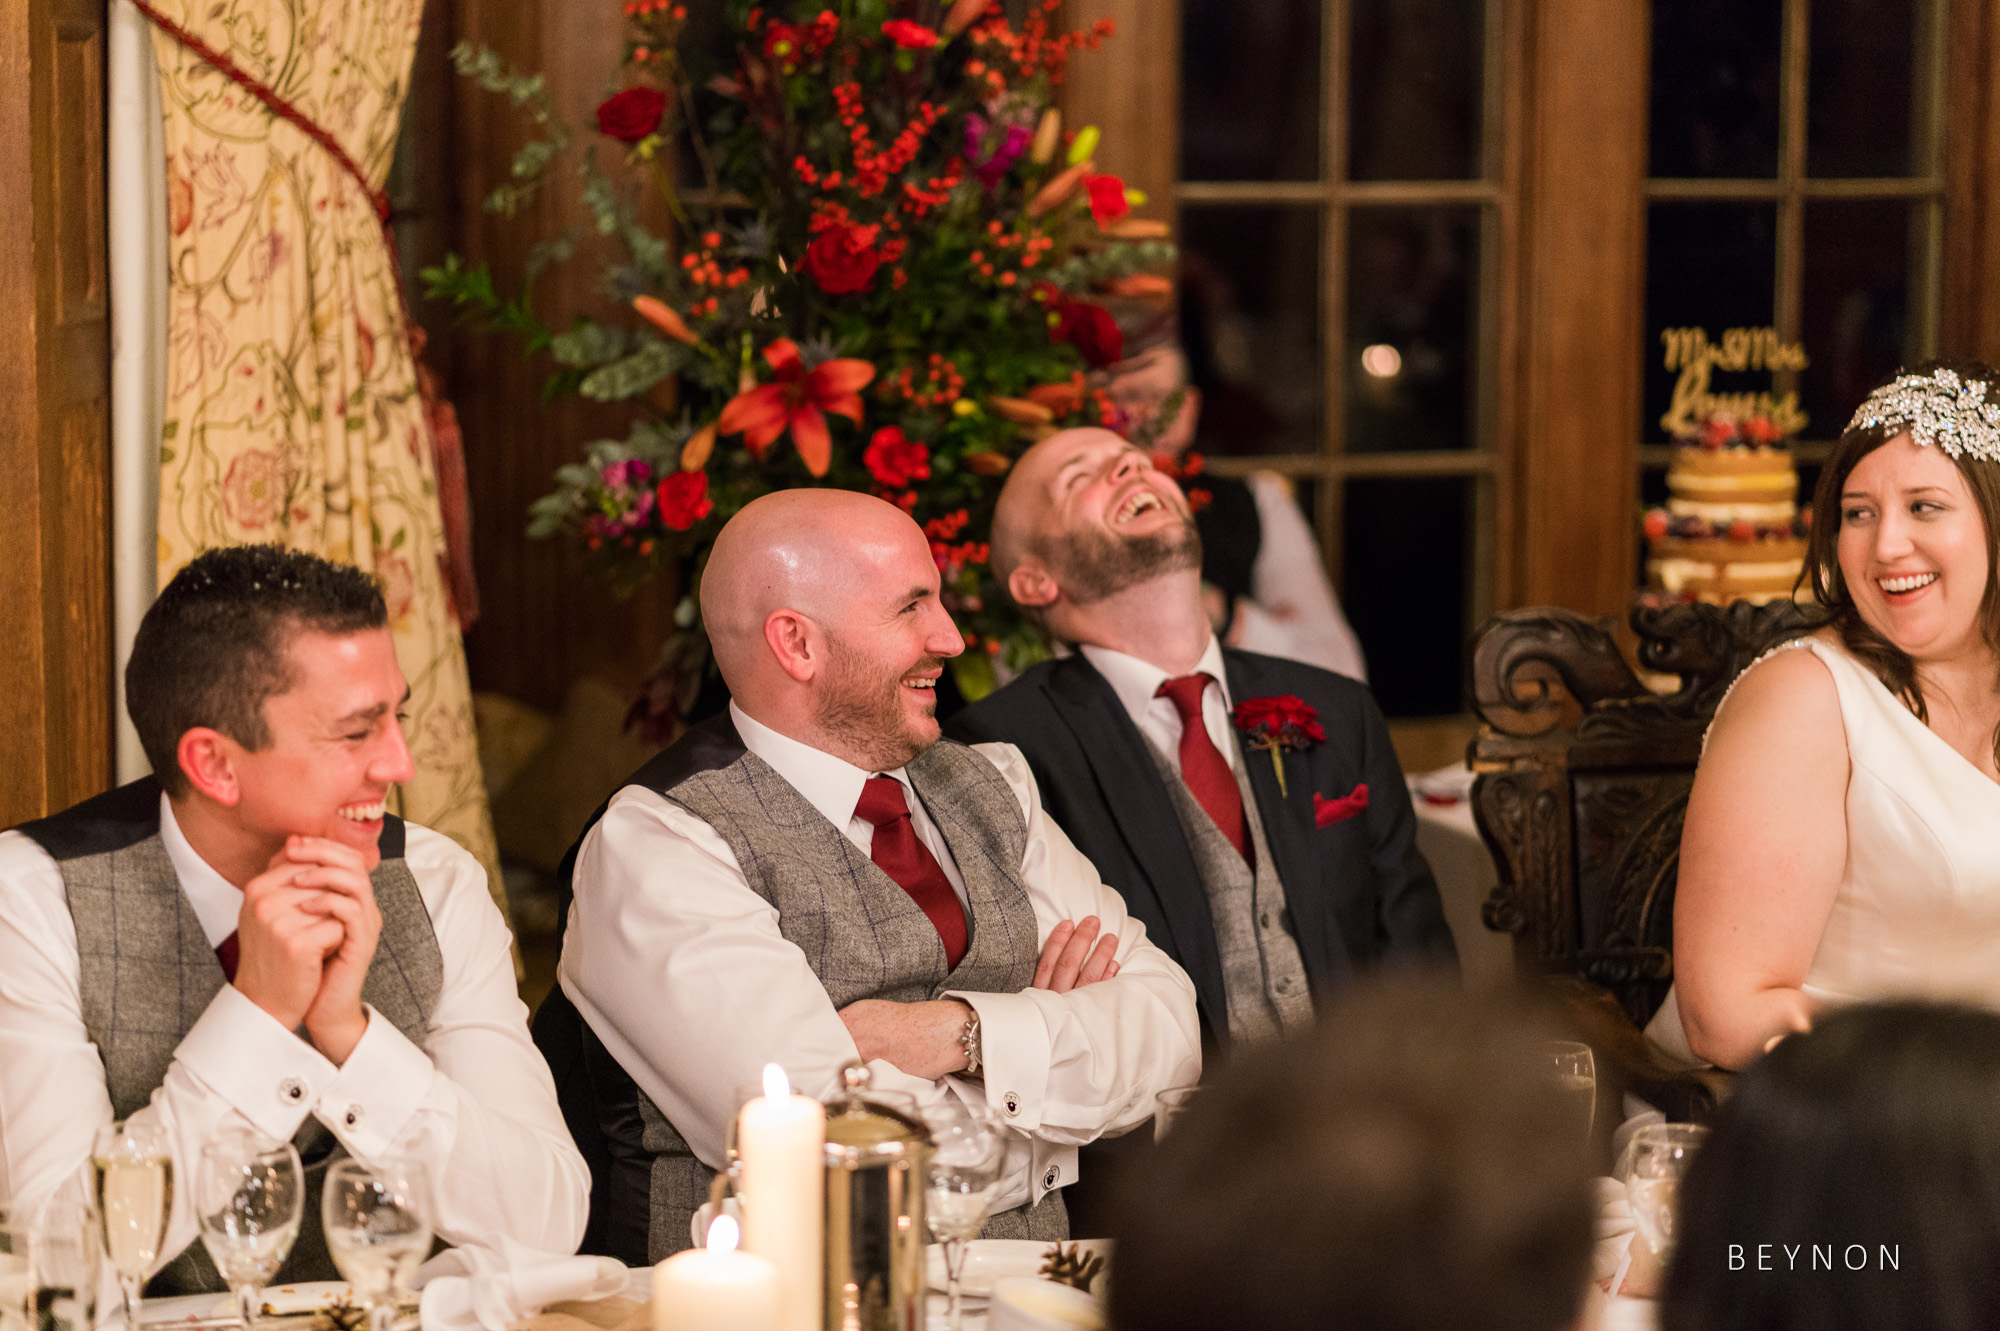 The top table laugh and smile